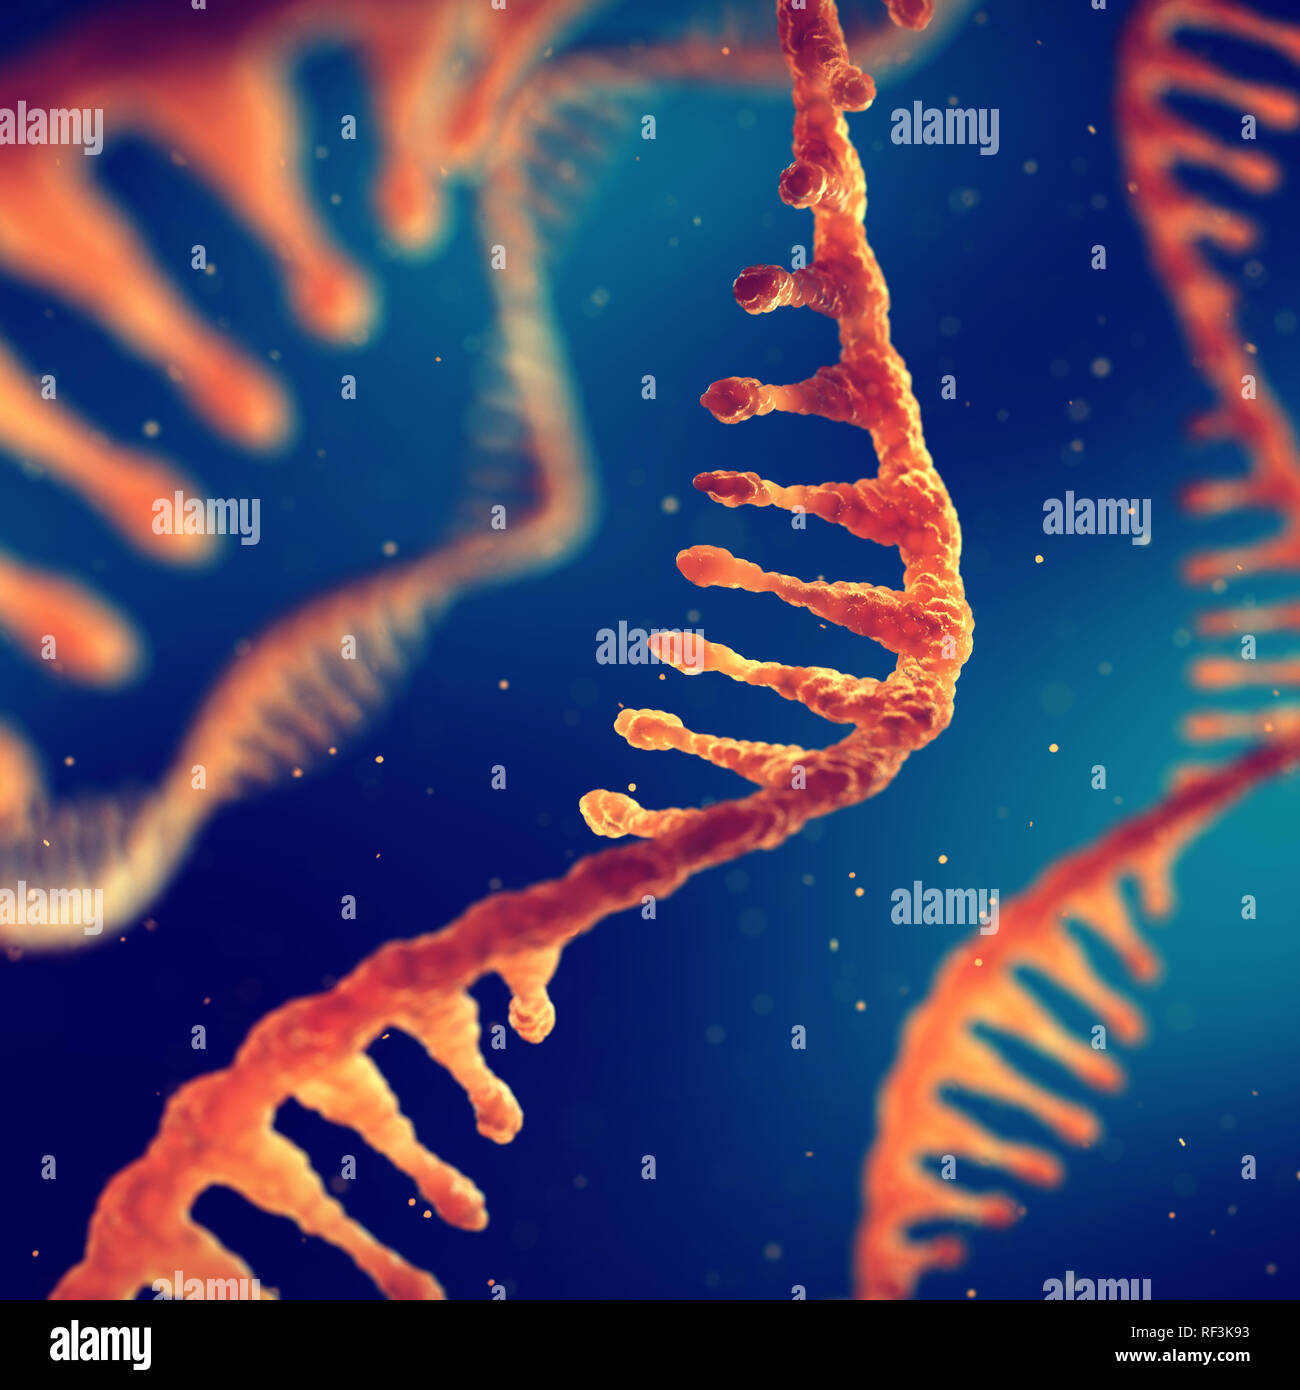 Single strand ribonucleic acid, RNA research and treatment - Stock Image